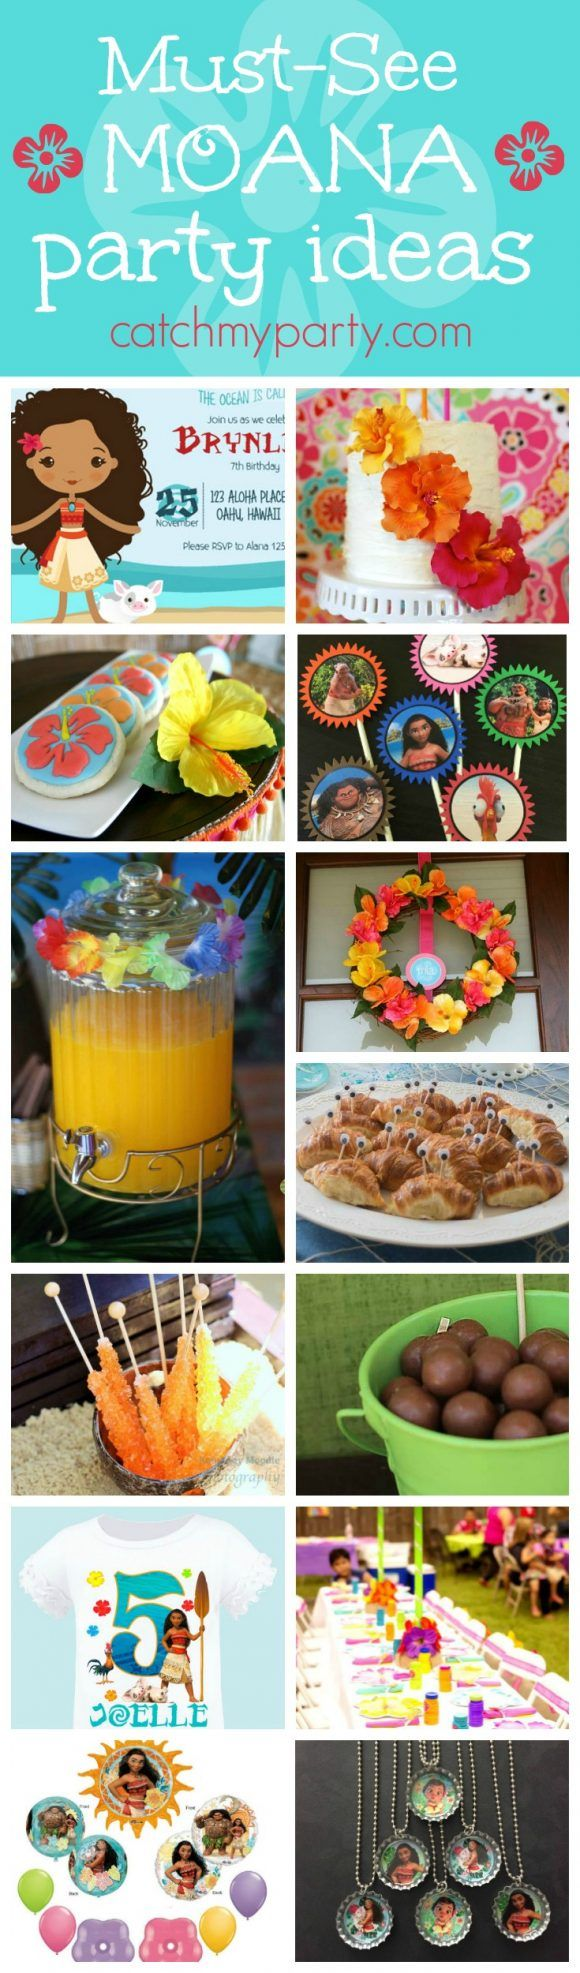 Check out this fabulous Roundup of Moana birthday party ideas! You'll find great ideas for things like decorations, birthday cake, a party favor and much much more!! See more party ideas and share yours at CatchMyParty.com